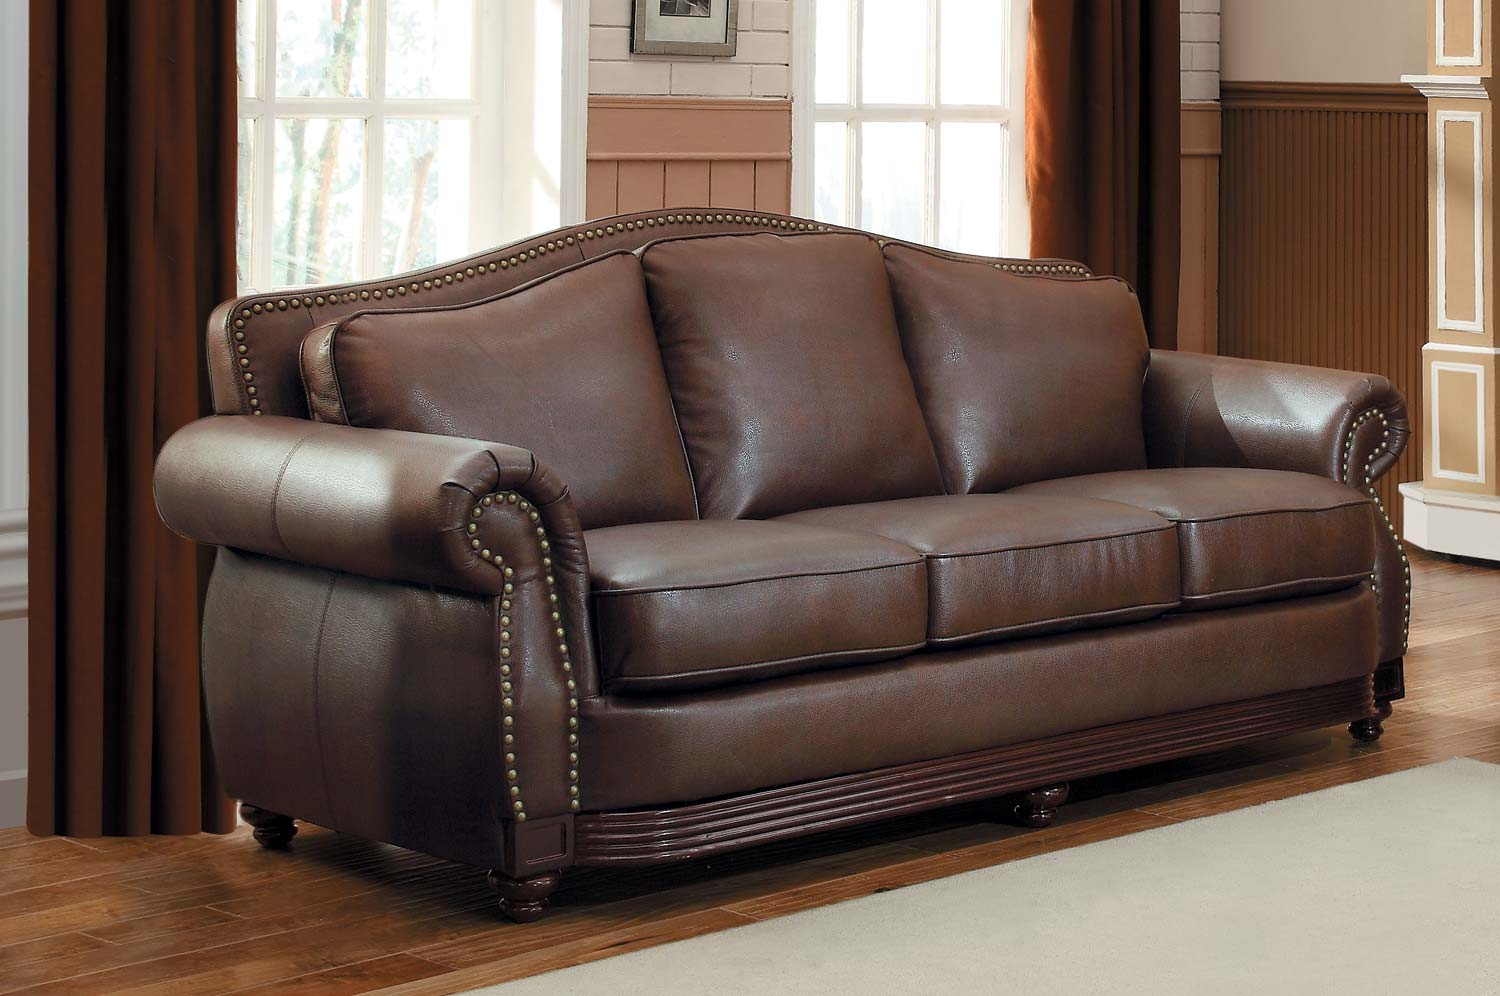 Homelegance midwood bonded leather sofa collection dark for Leather furniture